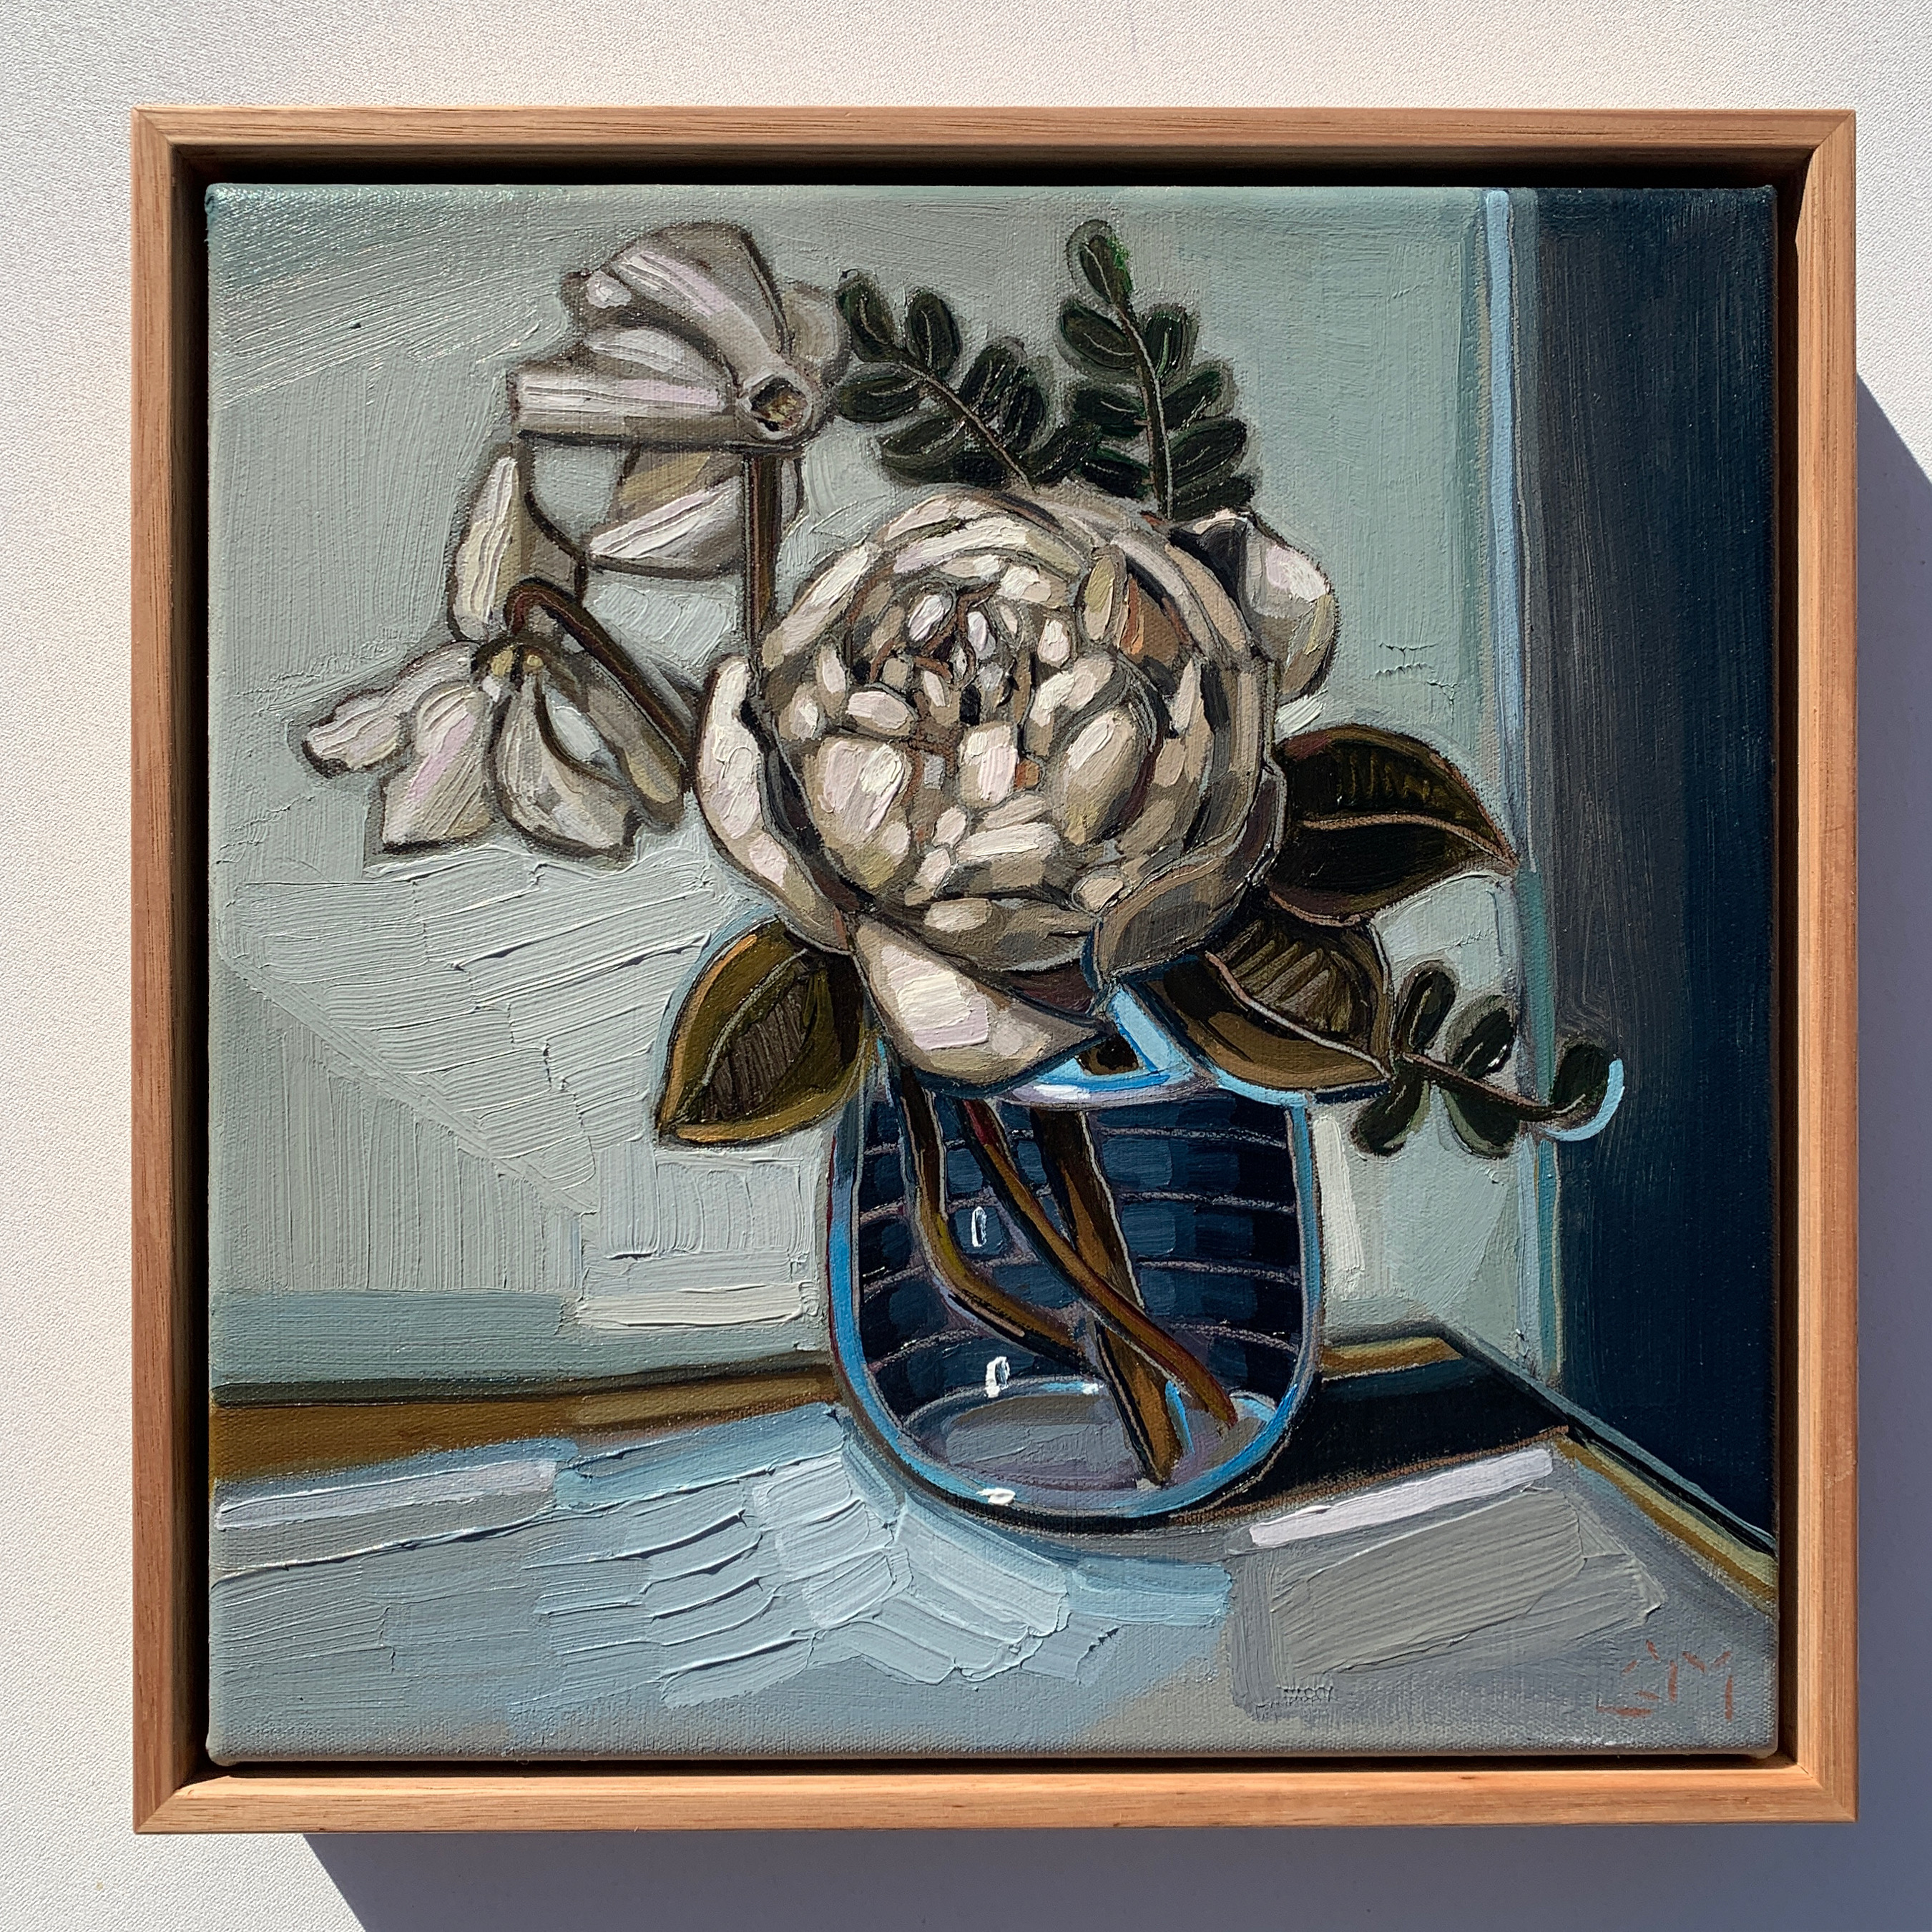 sam michelle 'rose & cyclamen' 31x31cm 2